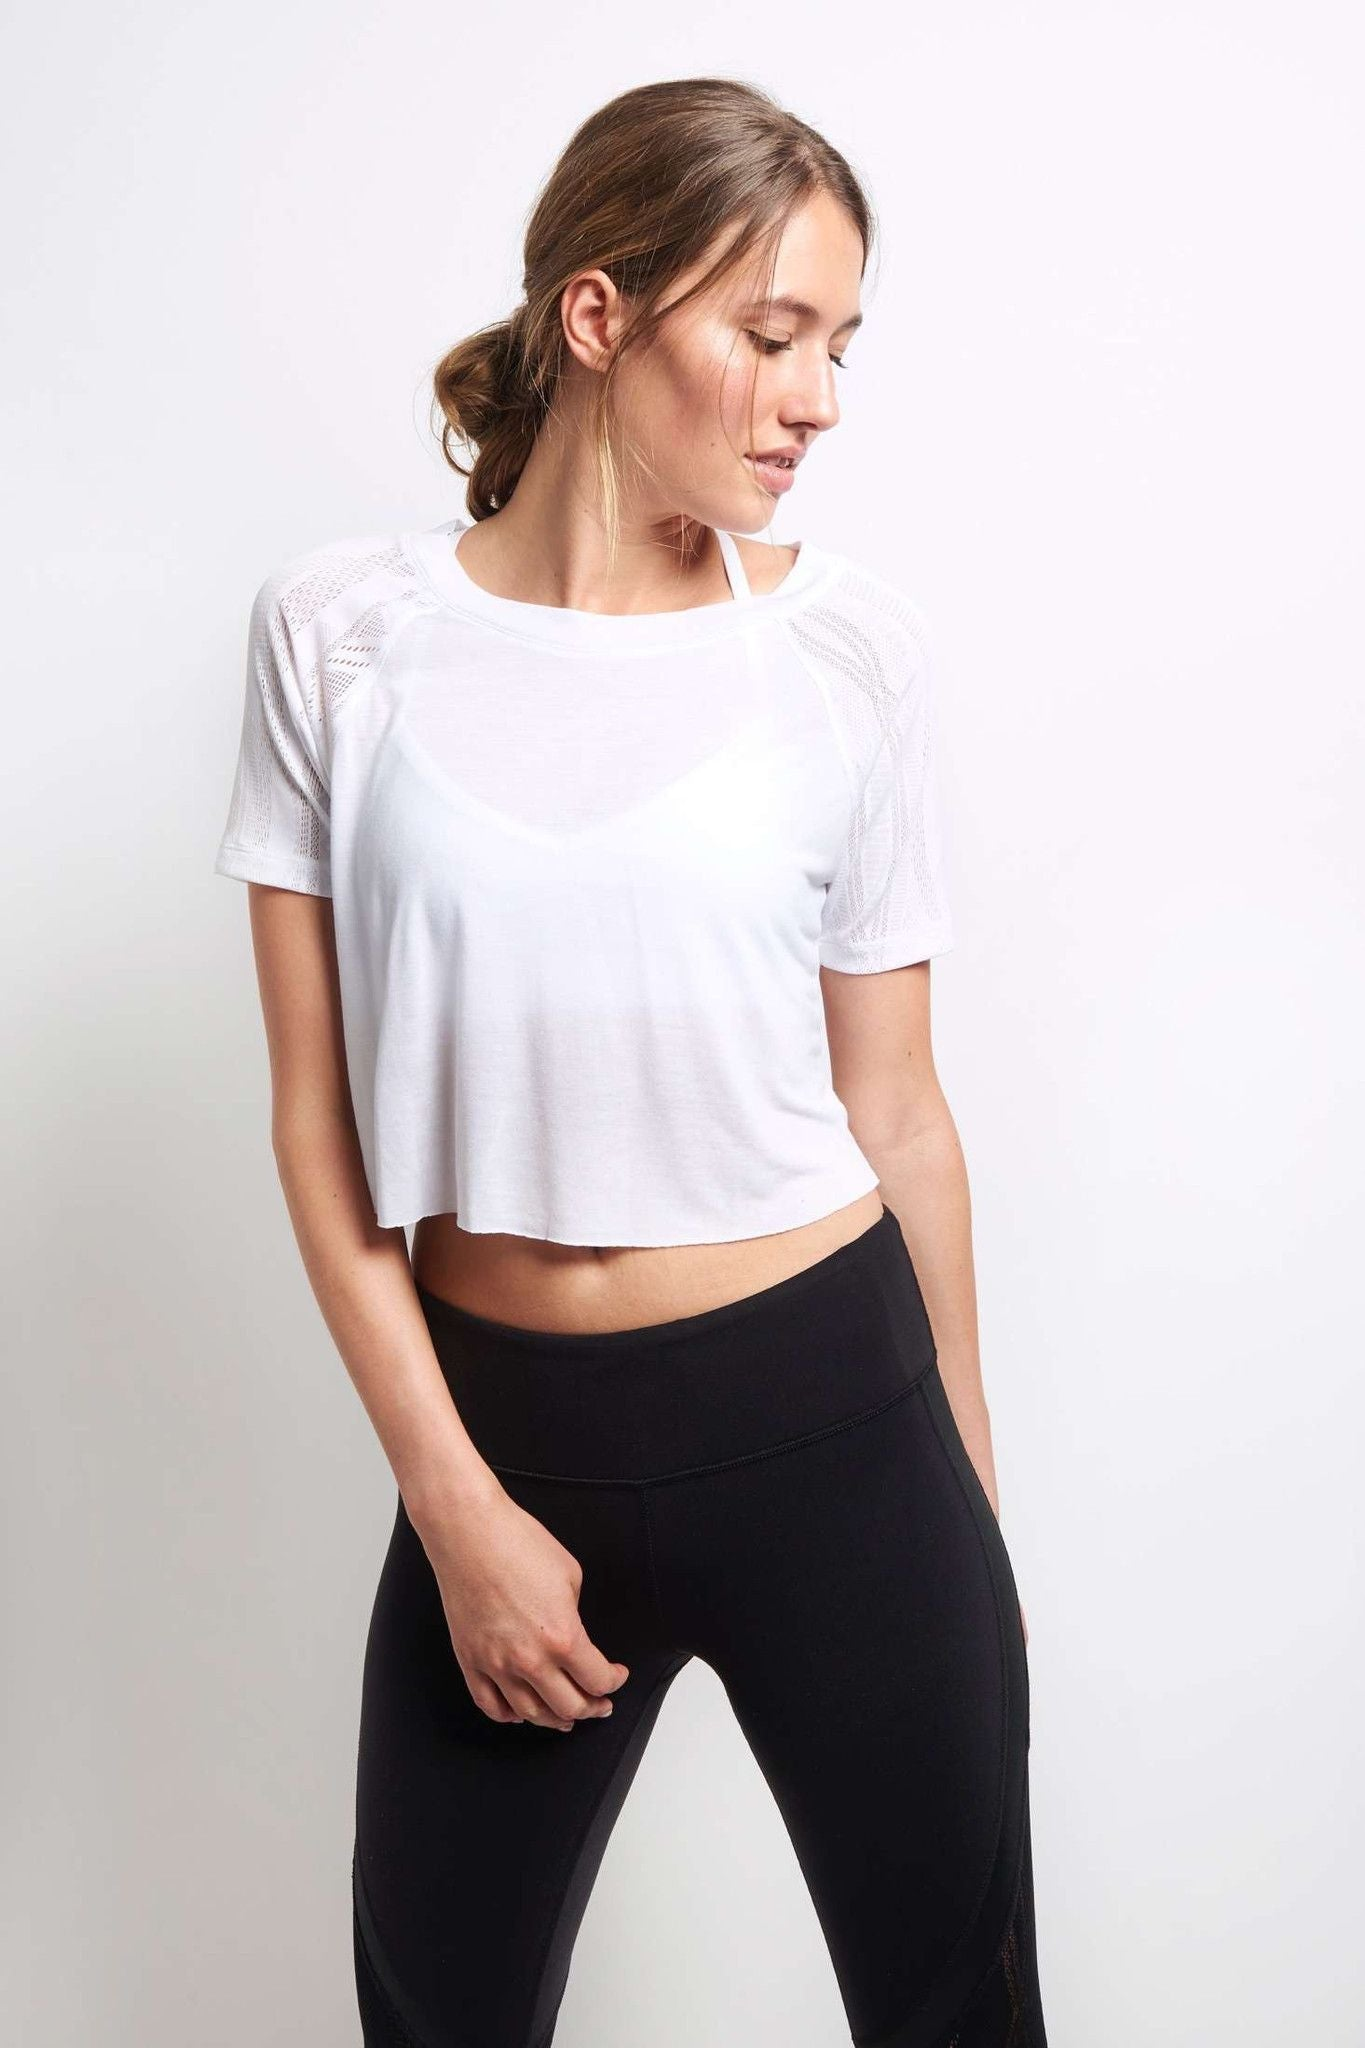 Alo Yoga Sport Short Sleeve Top - White image 2 - The Sports Edit